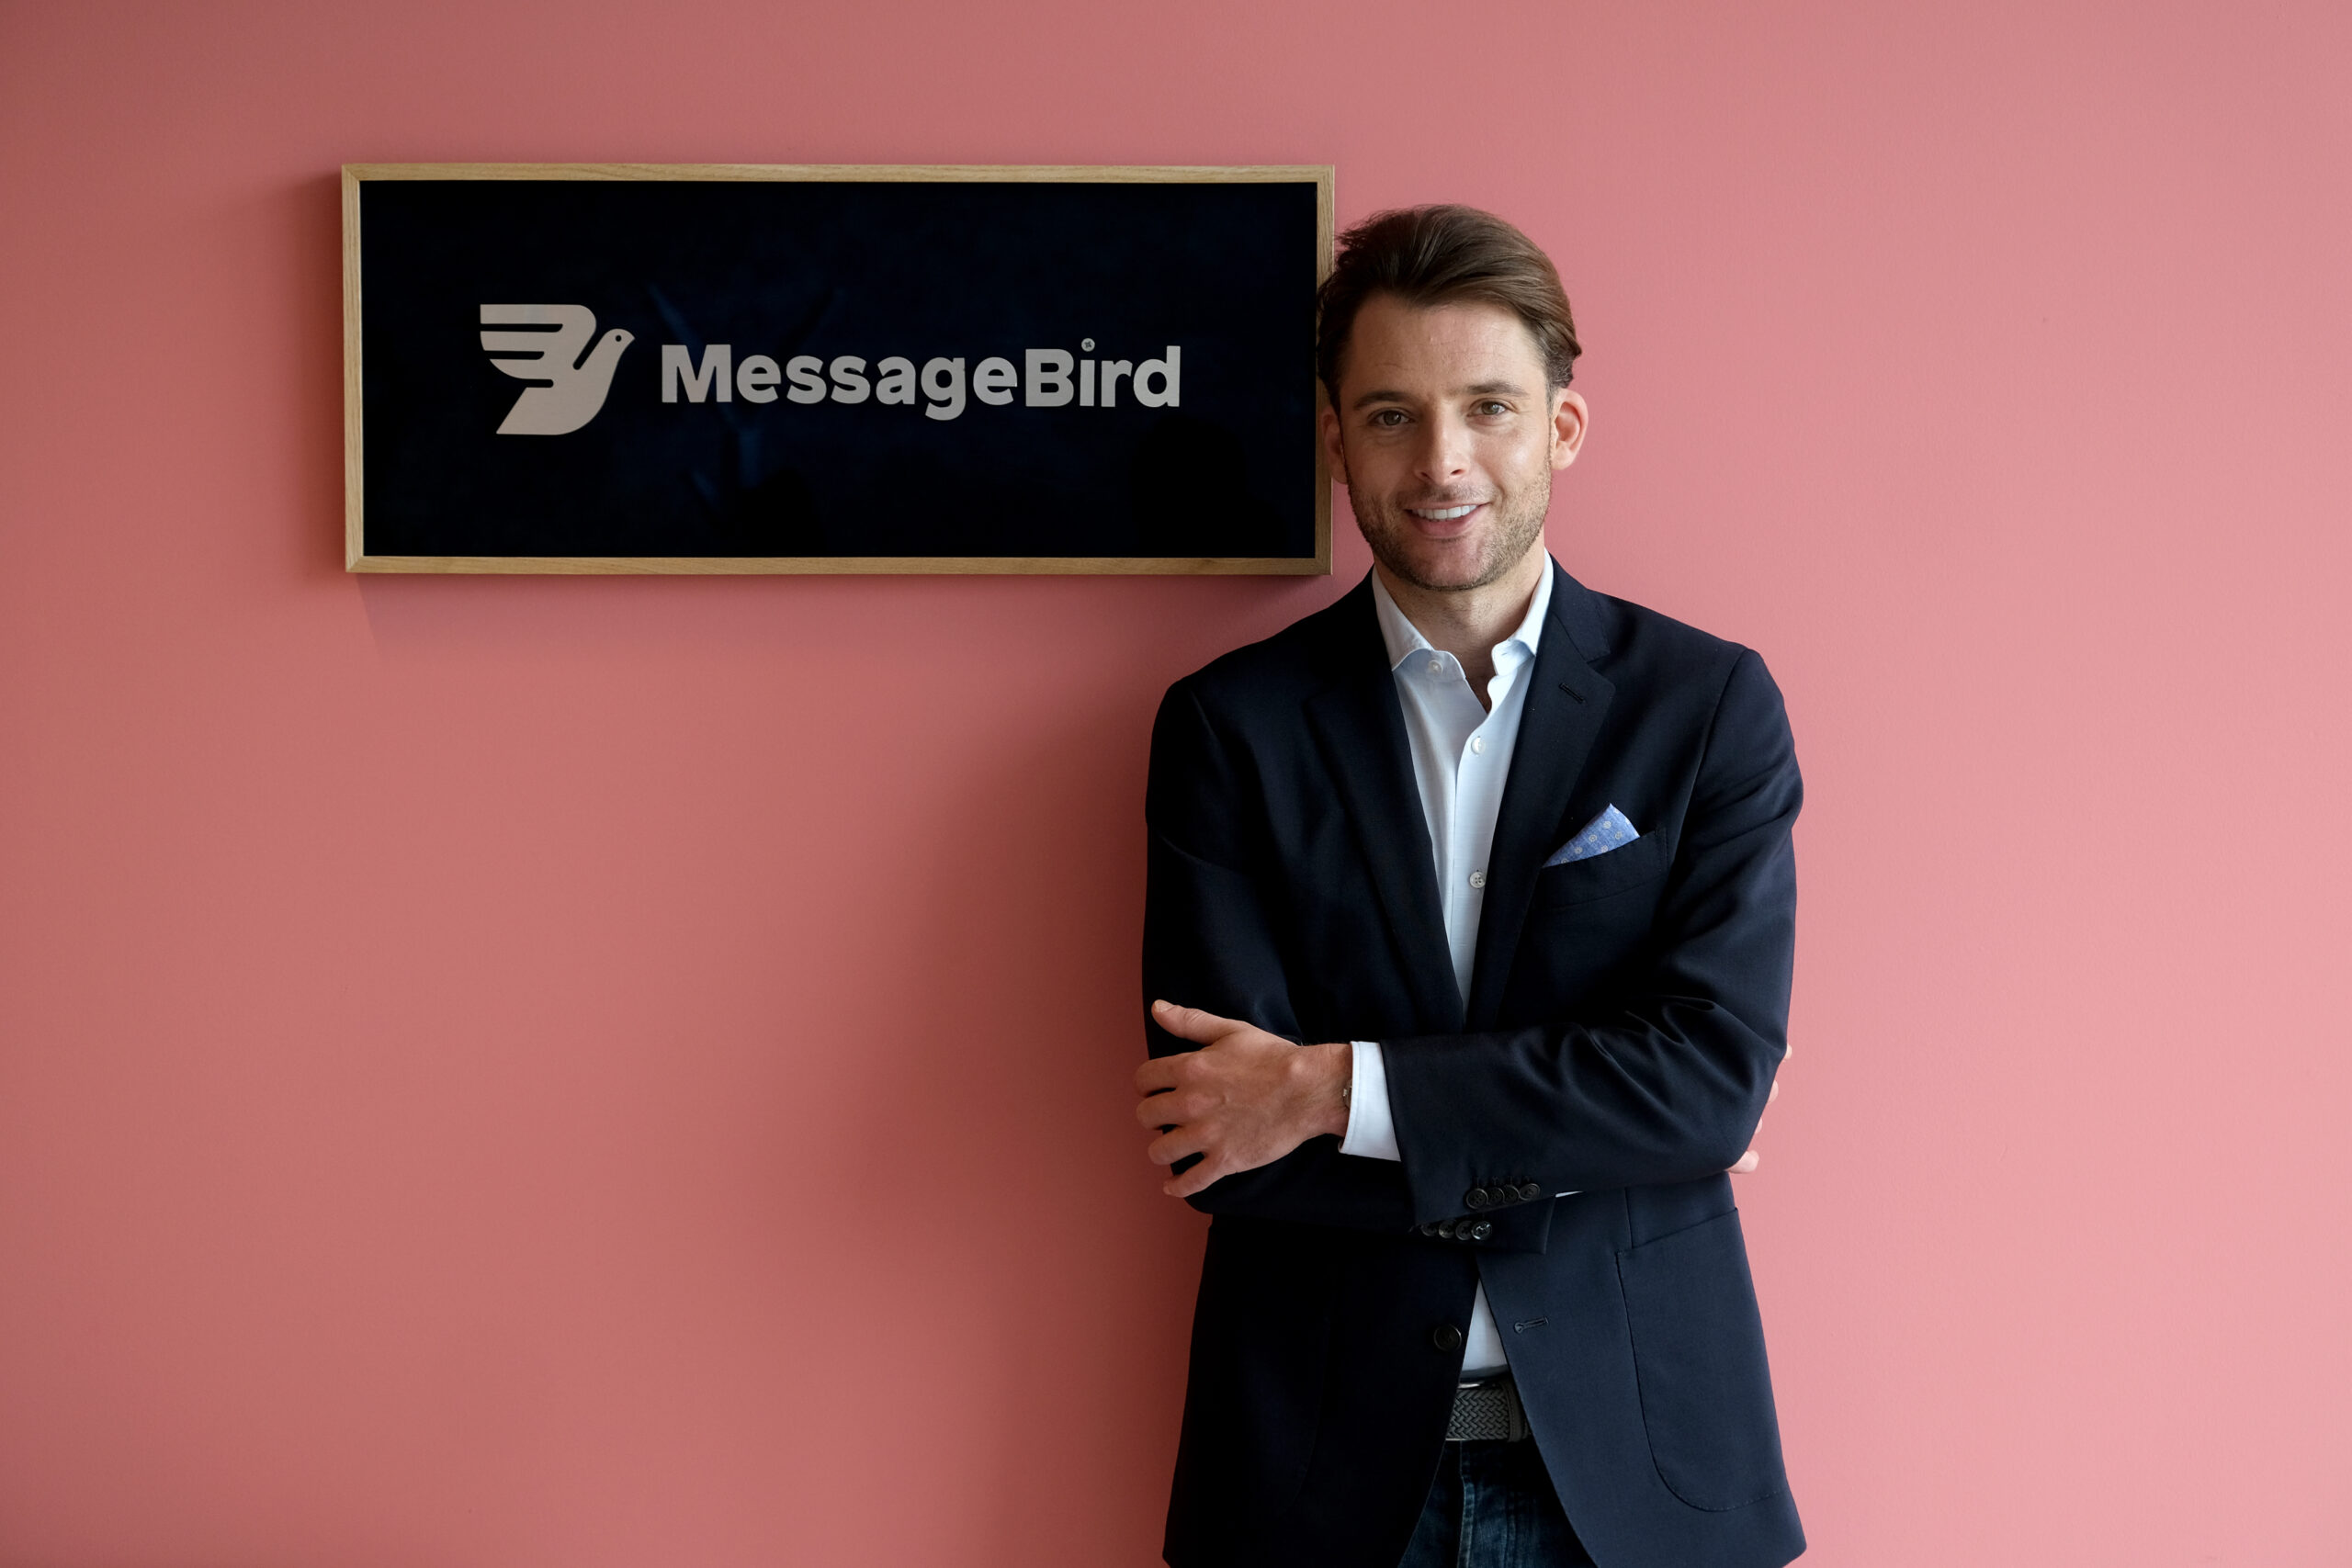 MessageBird neemt 24sessions over en voegt video toe aan's werelds grootste omnichannel platform